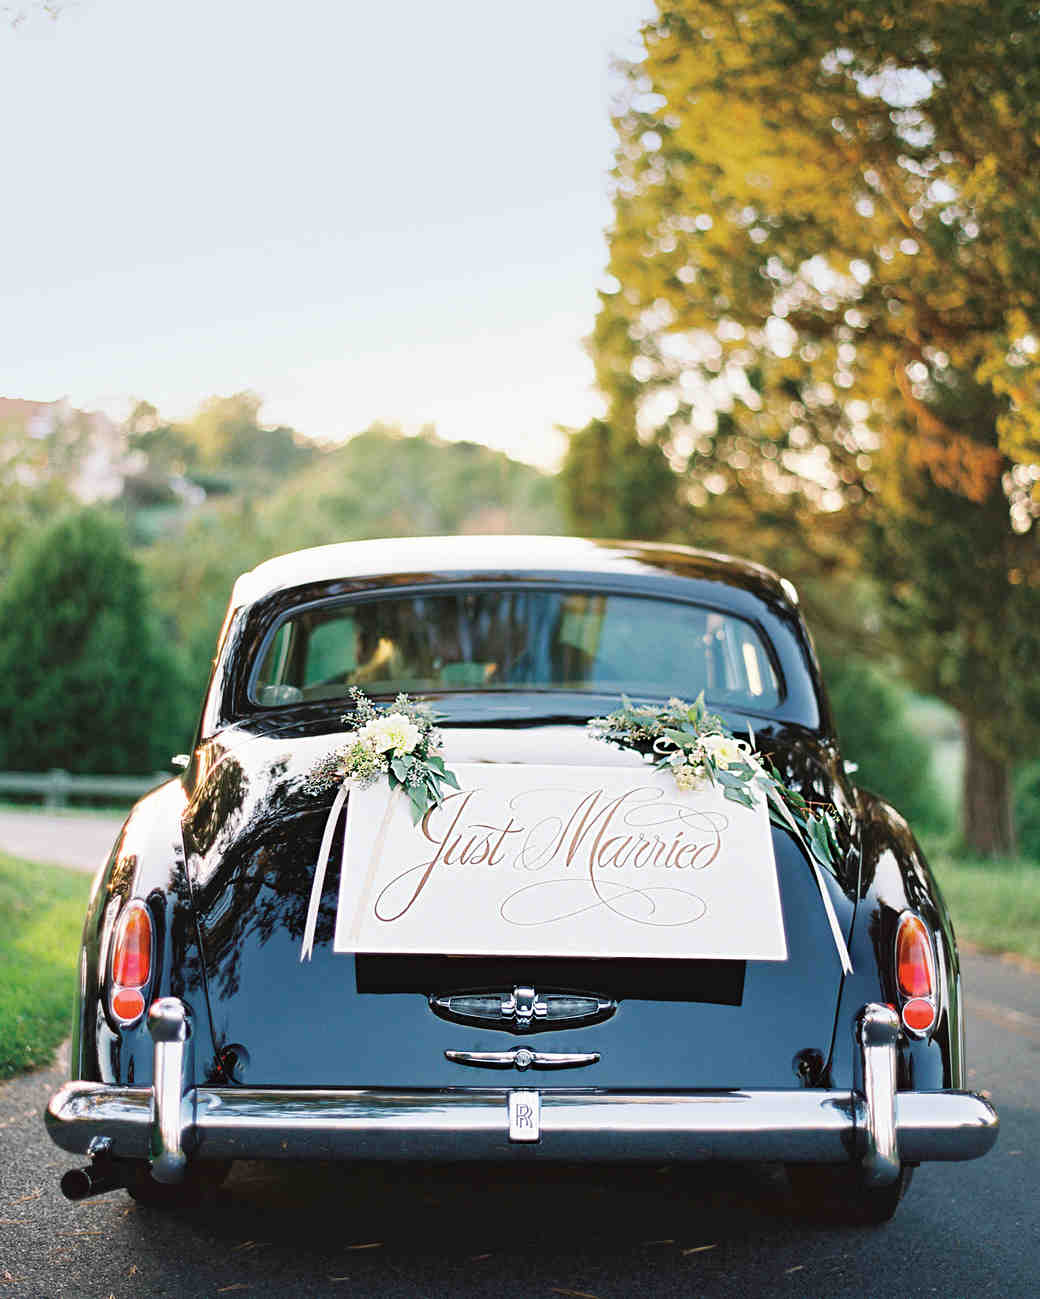 Wedding décor when to customize and refrain